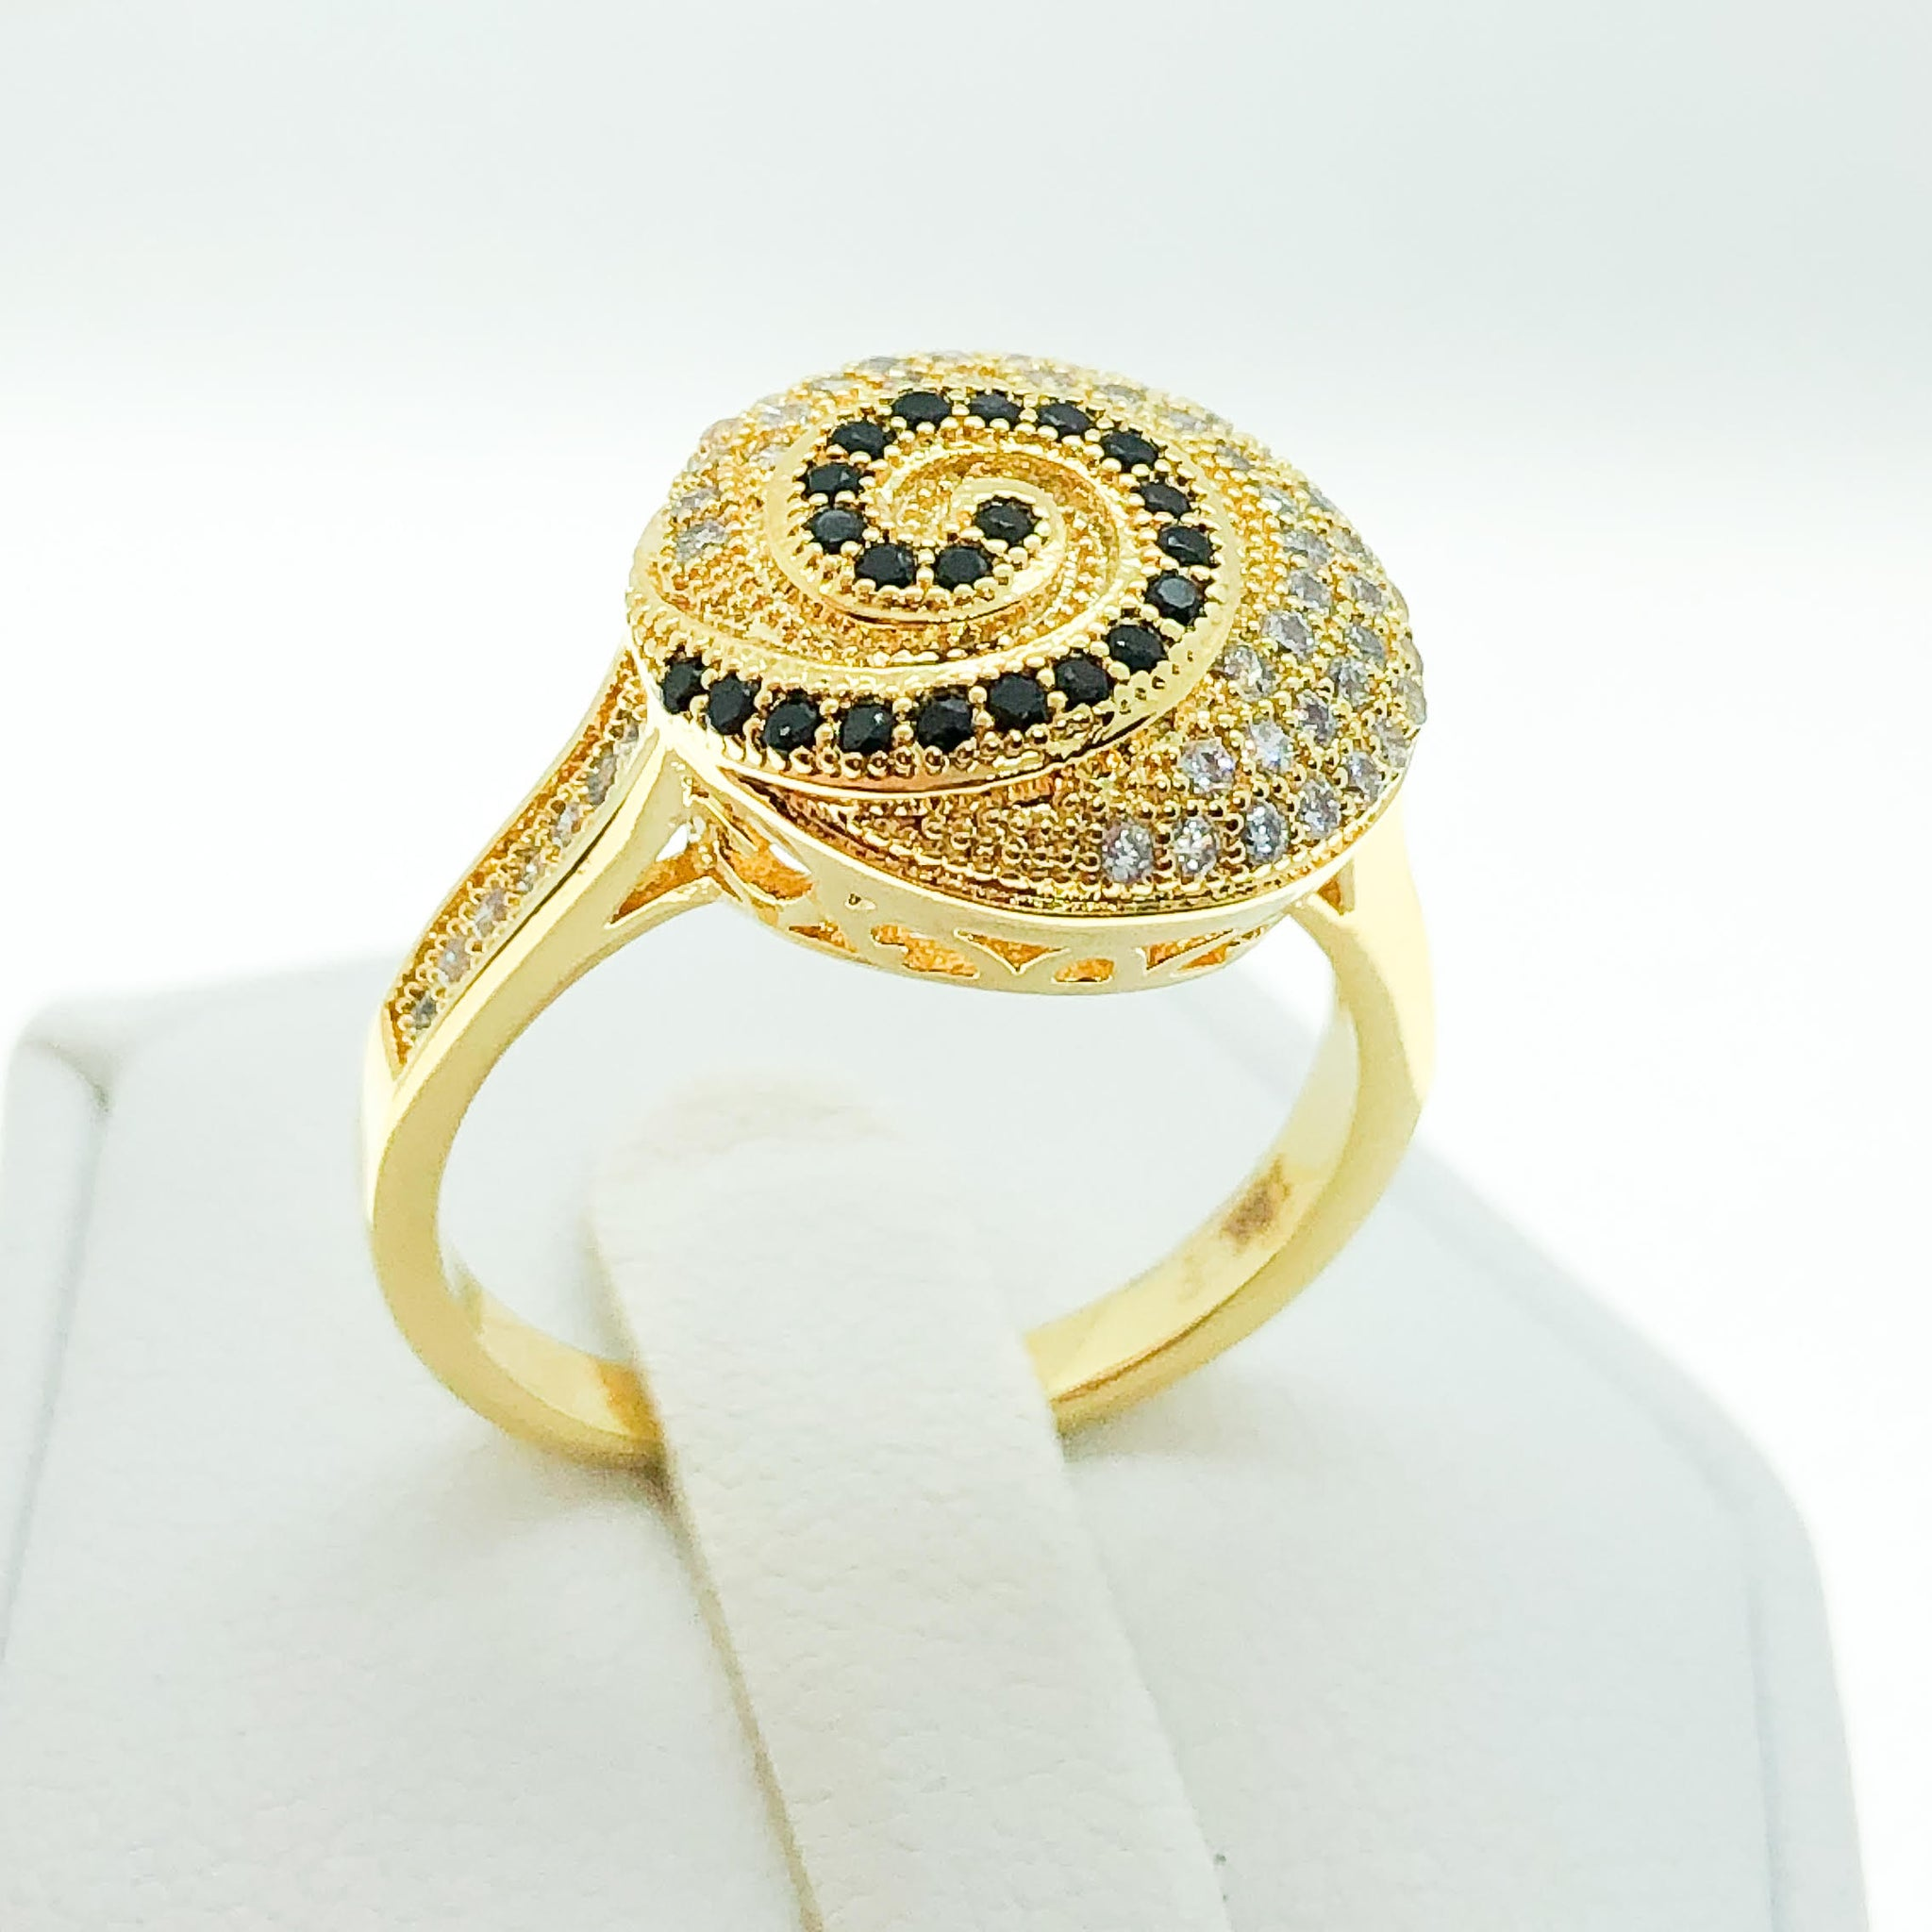 ID:R6454 Women 18K Yellow Gold GF Fashion Jewelry Unique Design Clear & Black Gemstones Eternity Dome Ring